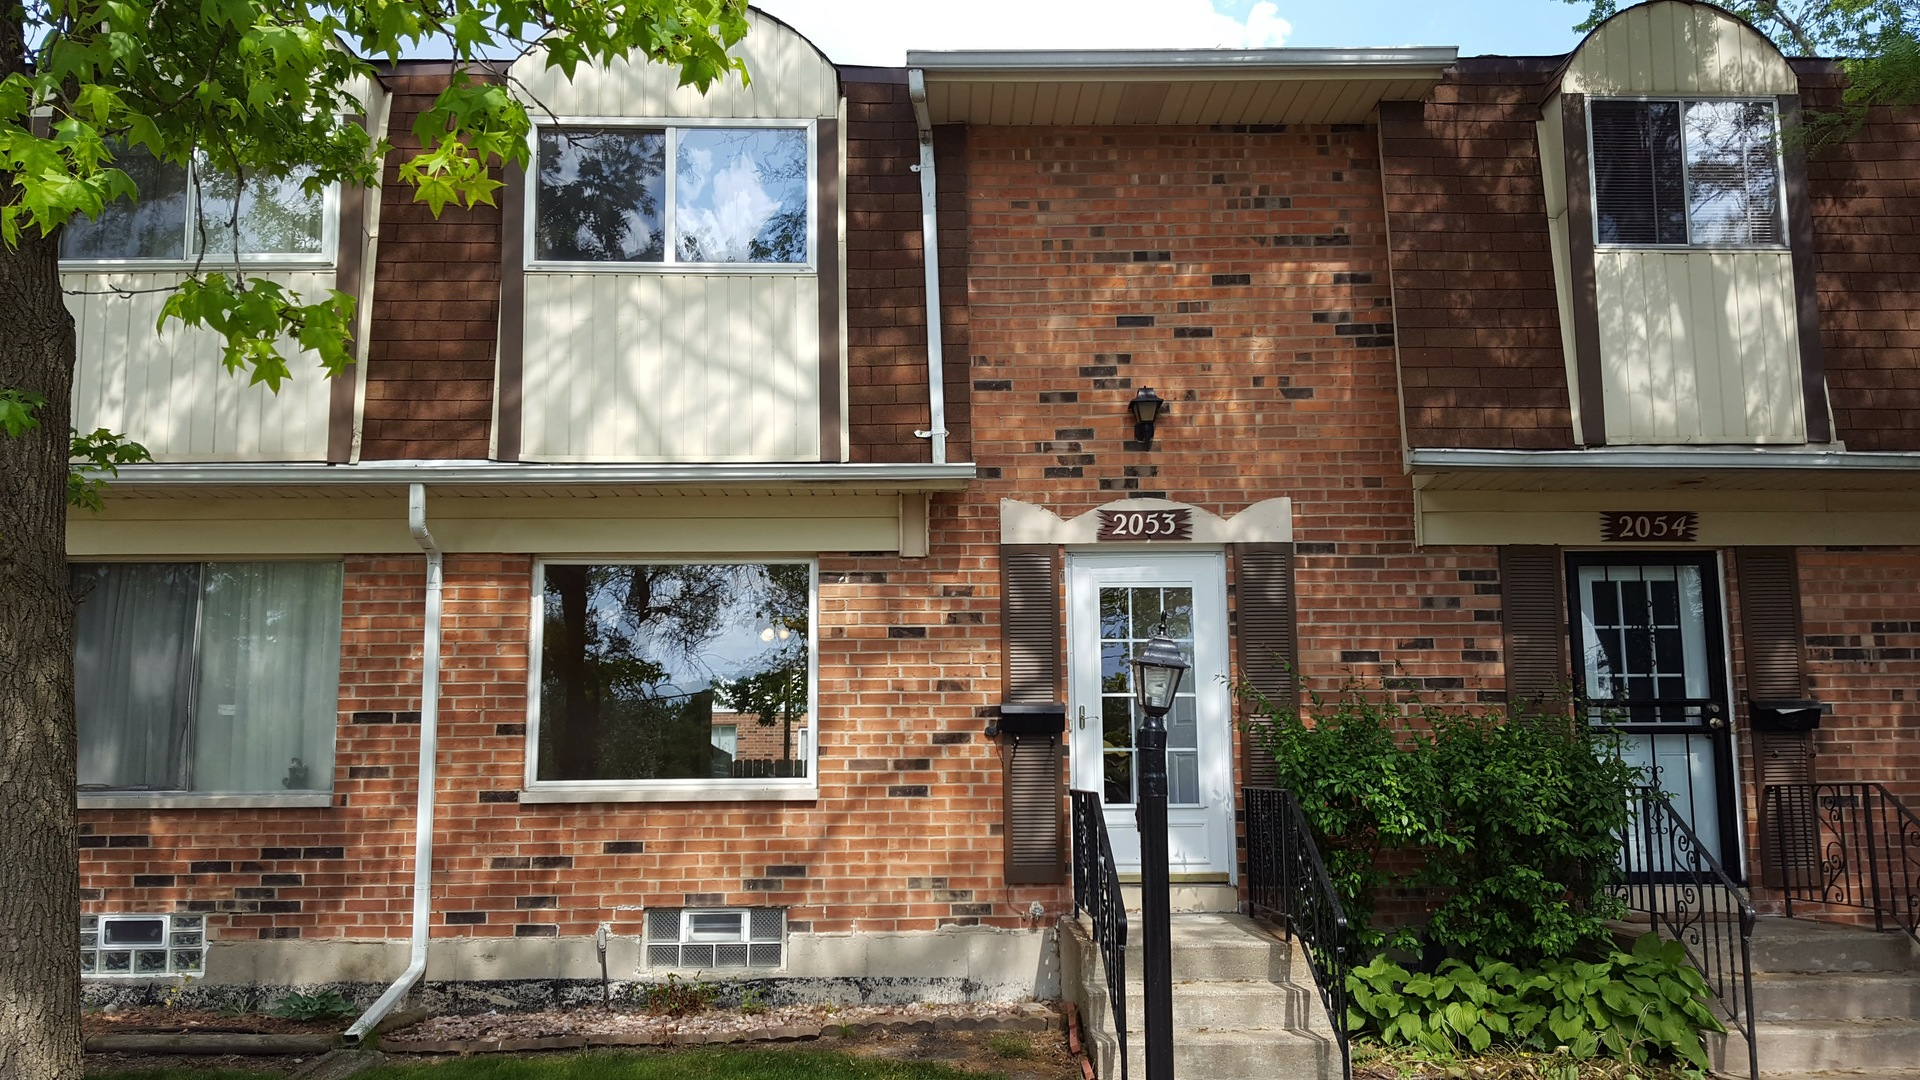 richton dating Sold: 3 bed, 1 bath, 1089 sq ft house located at 22216 belmont rd, richton park, il 60471 sold for $48,000 on jul 5, 2018 mls# 09943735 very large corner lot split level.